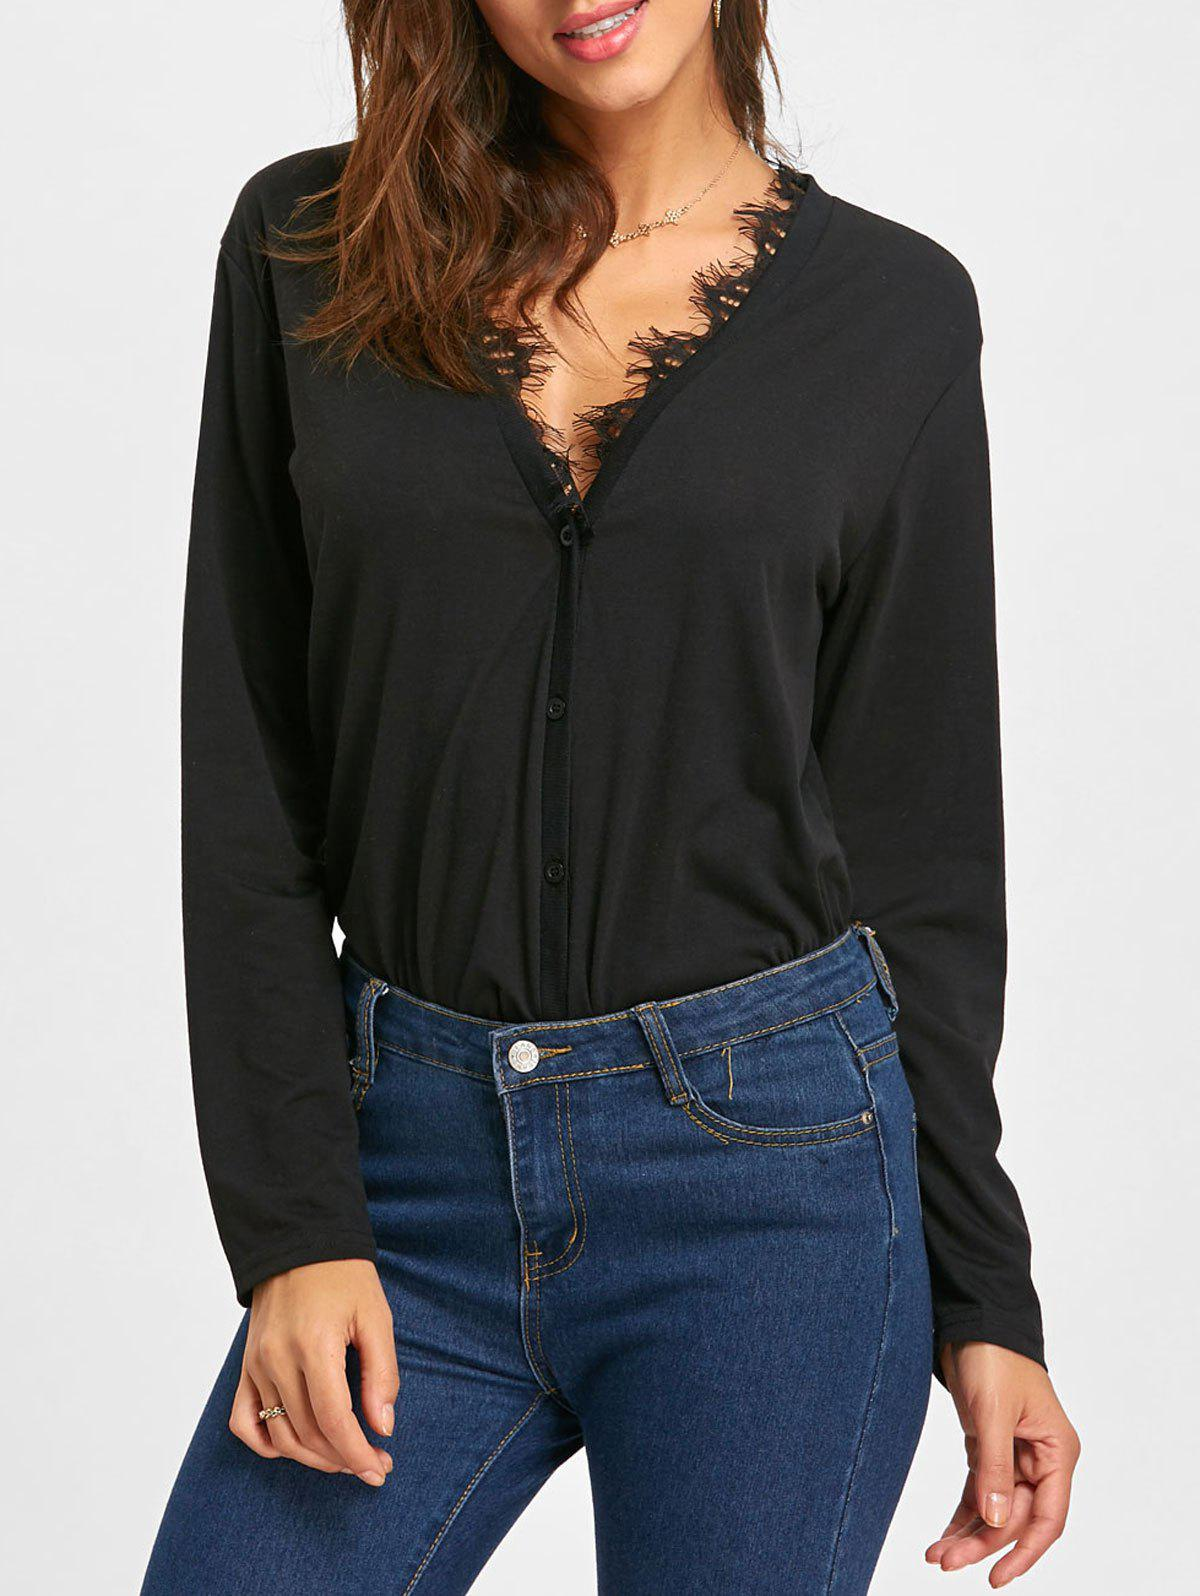 Crochet Button Up Low Cut BlouseWOMEN<br><br>Size: S; Color: BLACK; Style: Fashion; Material: Polyester; Shirt Length: Regular; Sleeve Length: Full; Collar: V-Neck; Pattern Type: Solid; Season: Fall,Spring; Weight: 0.2700kg; Package Contents: 1 x Blouse;